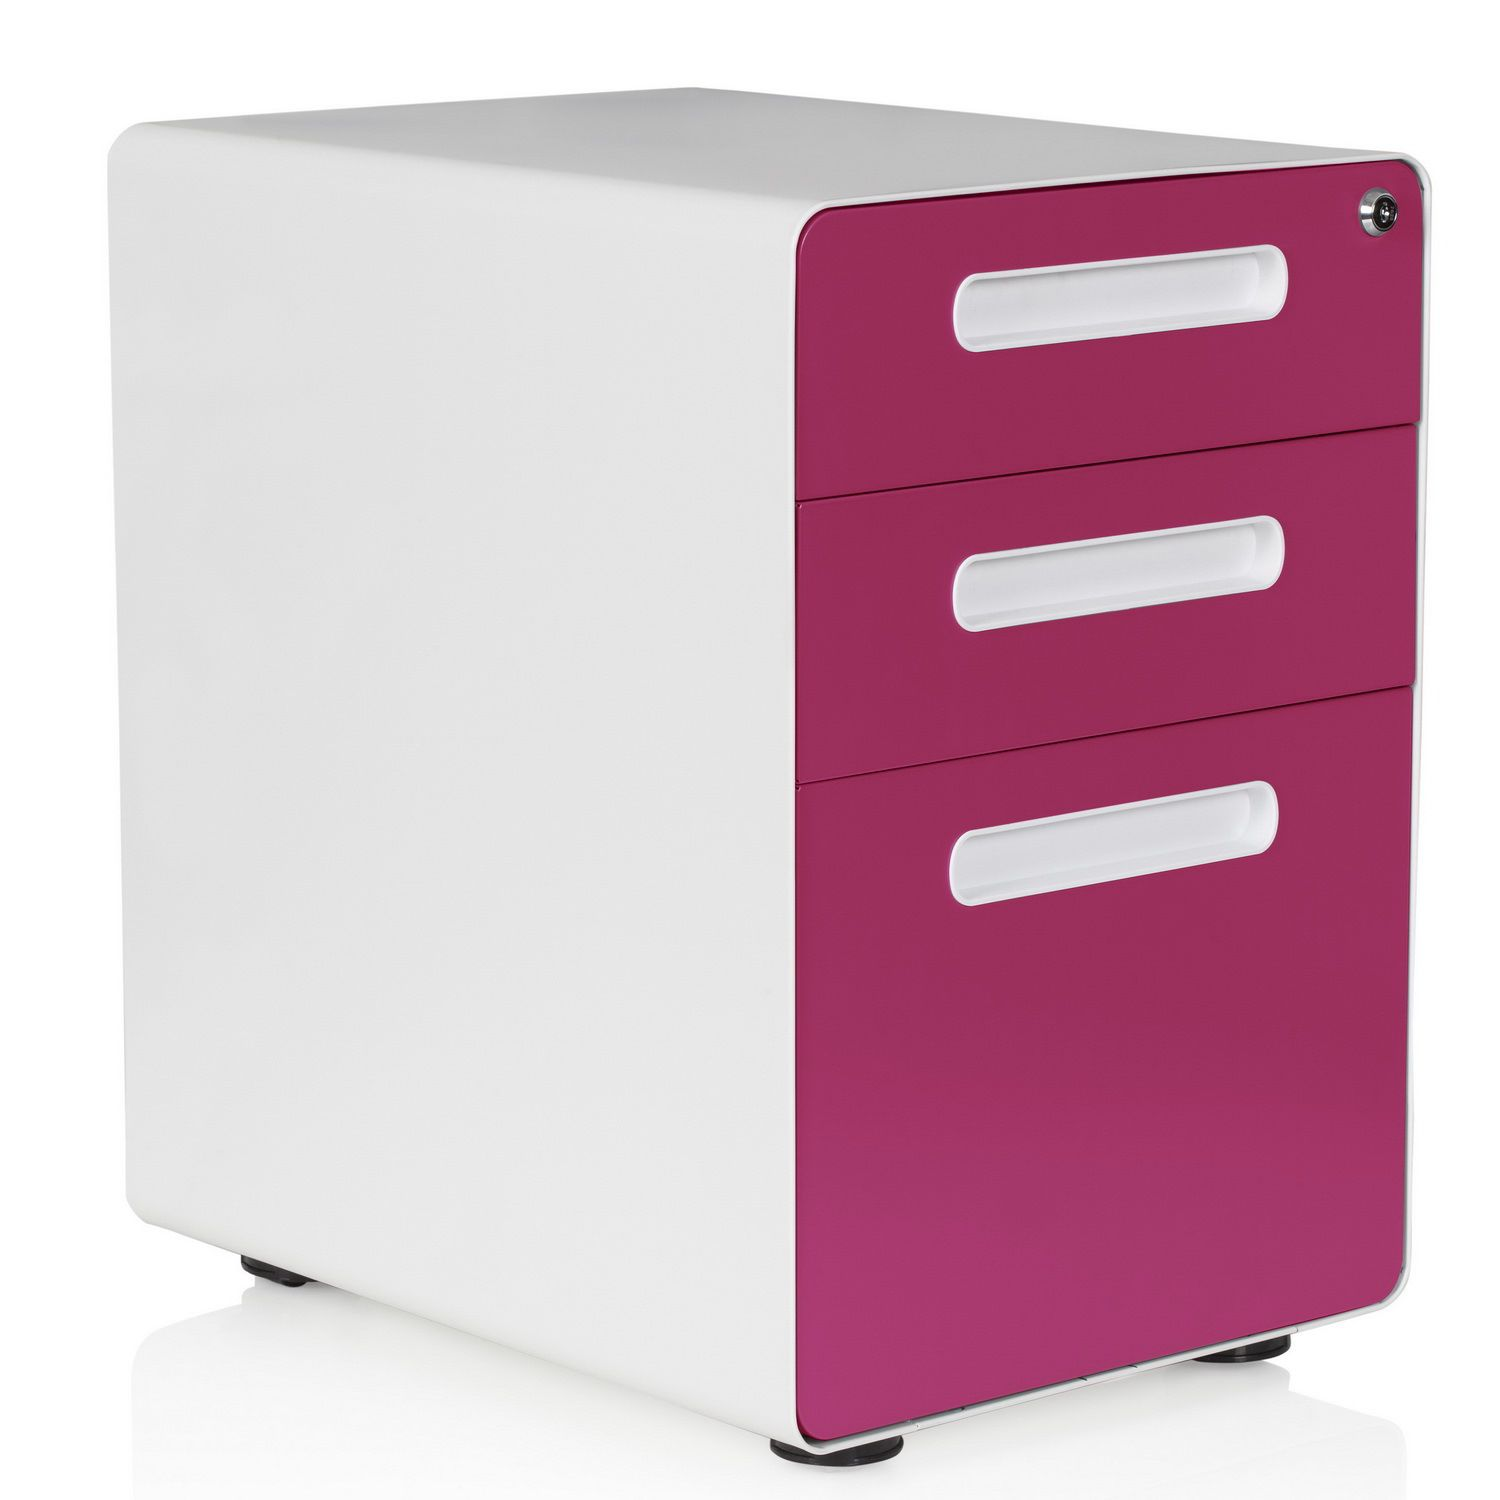 Rollcontainer COLOR PLUS Metall weiß / pink hjh OFFICE